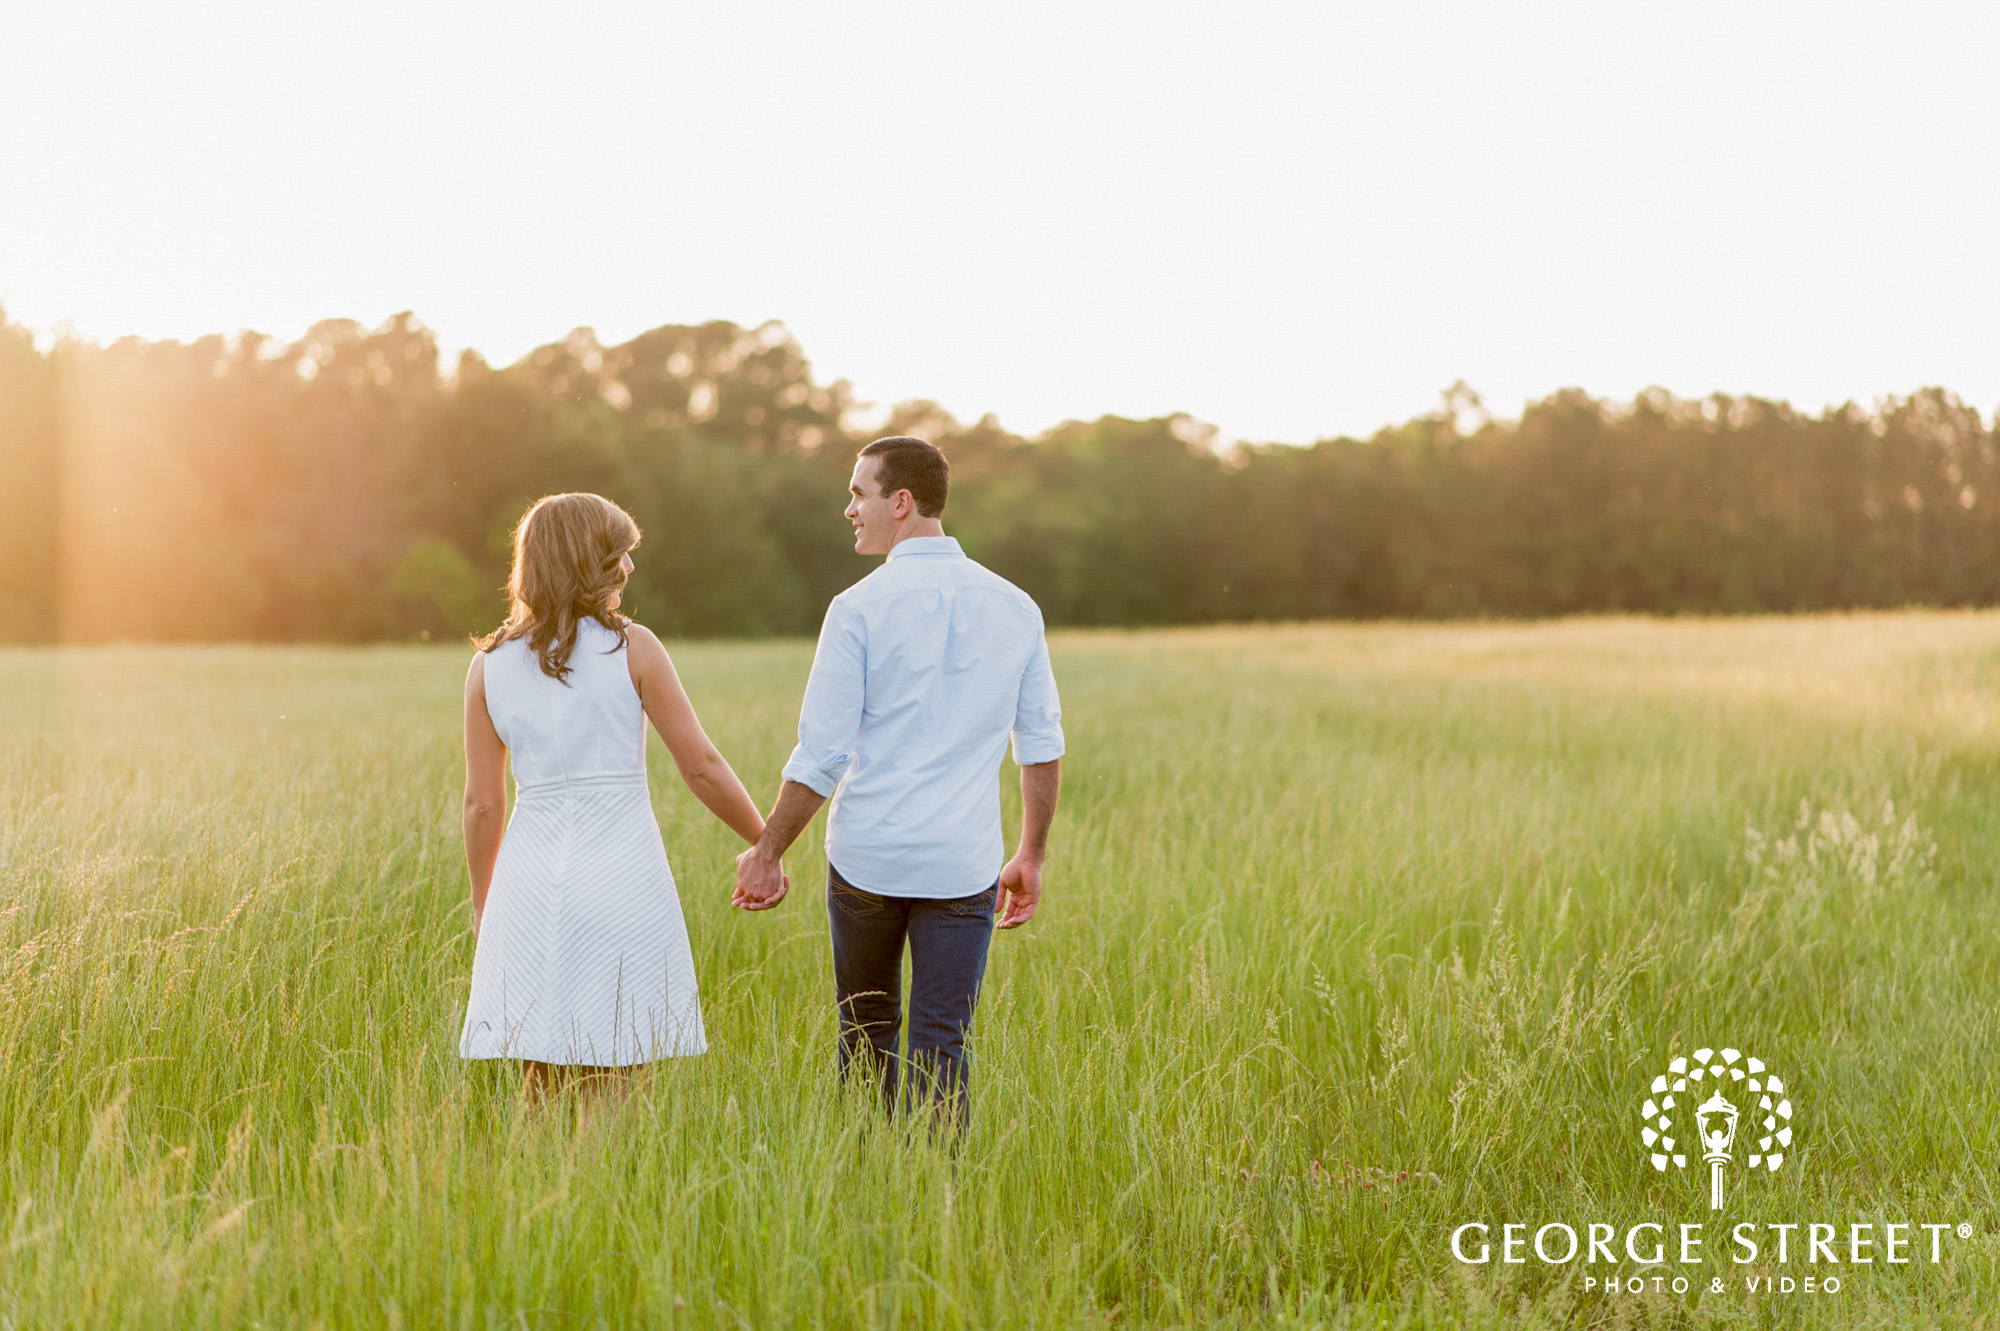 George Street's Top 4 Engagement Session Locations in Charlotte